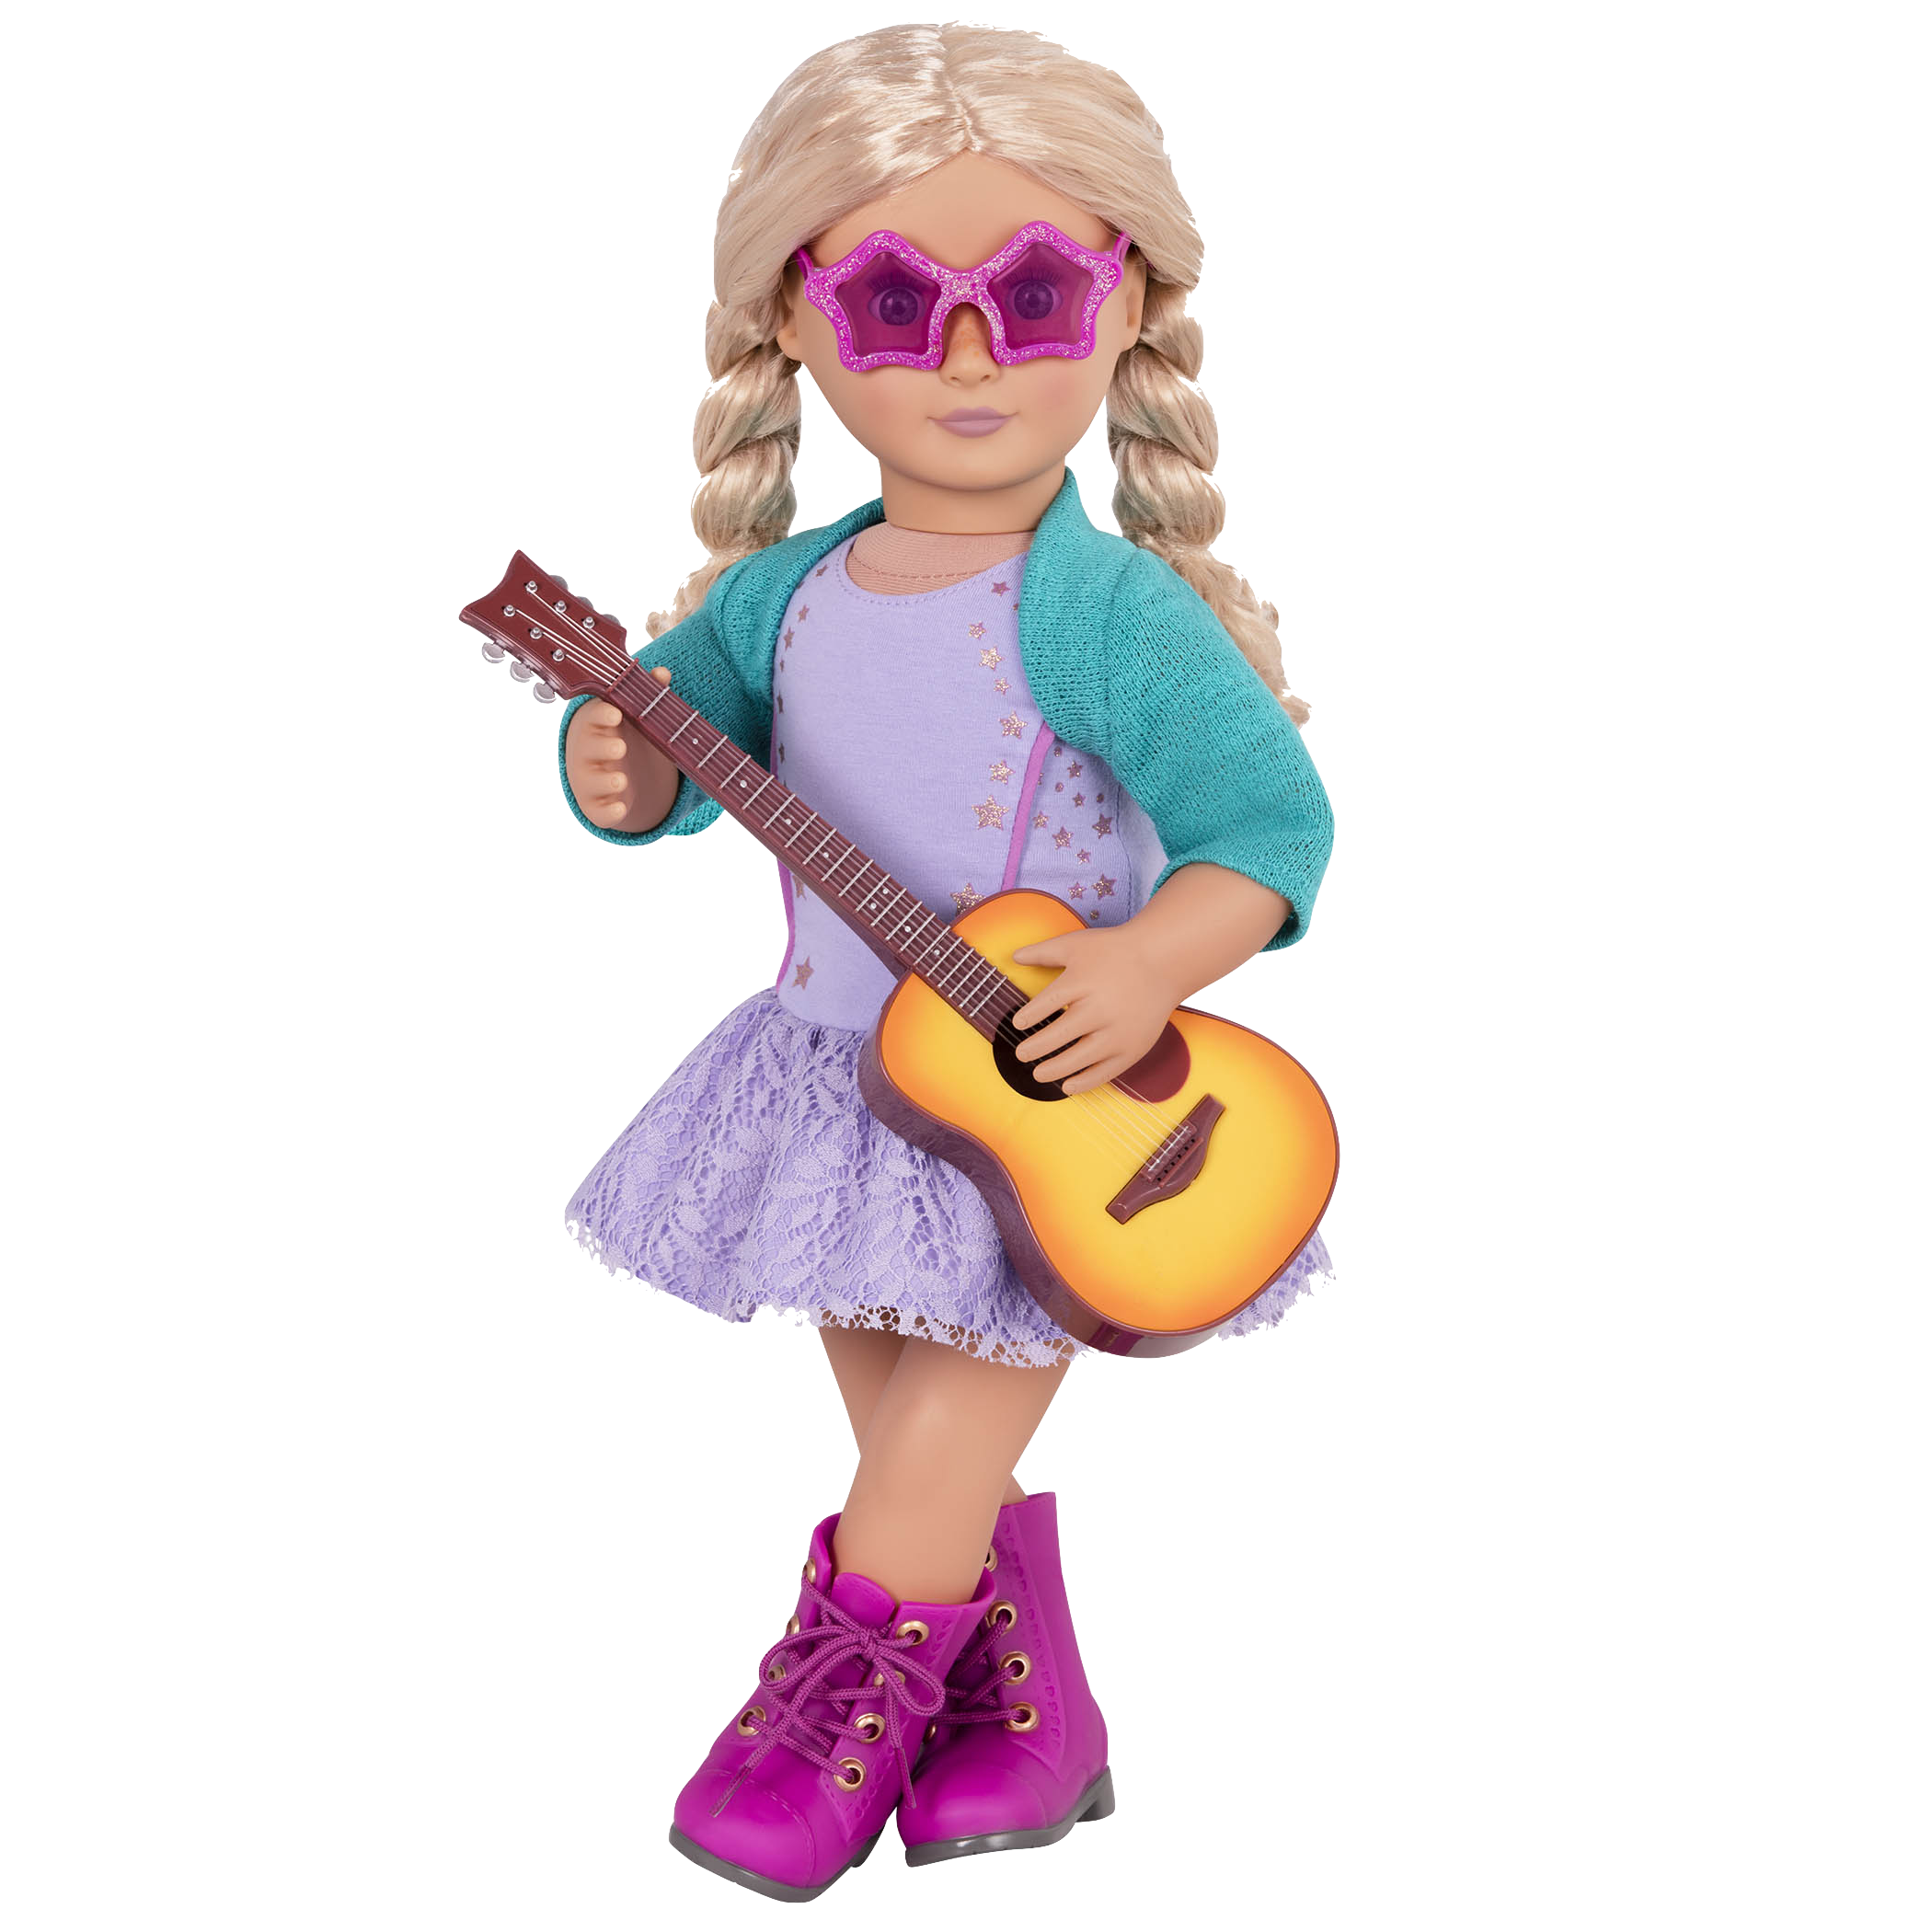 Coral wearing Melodies and Memories outfit and sunglasses